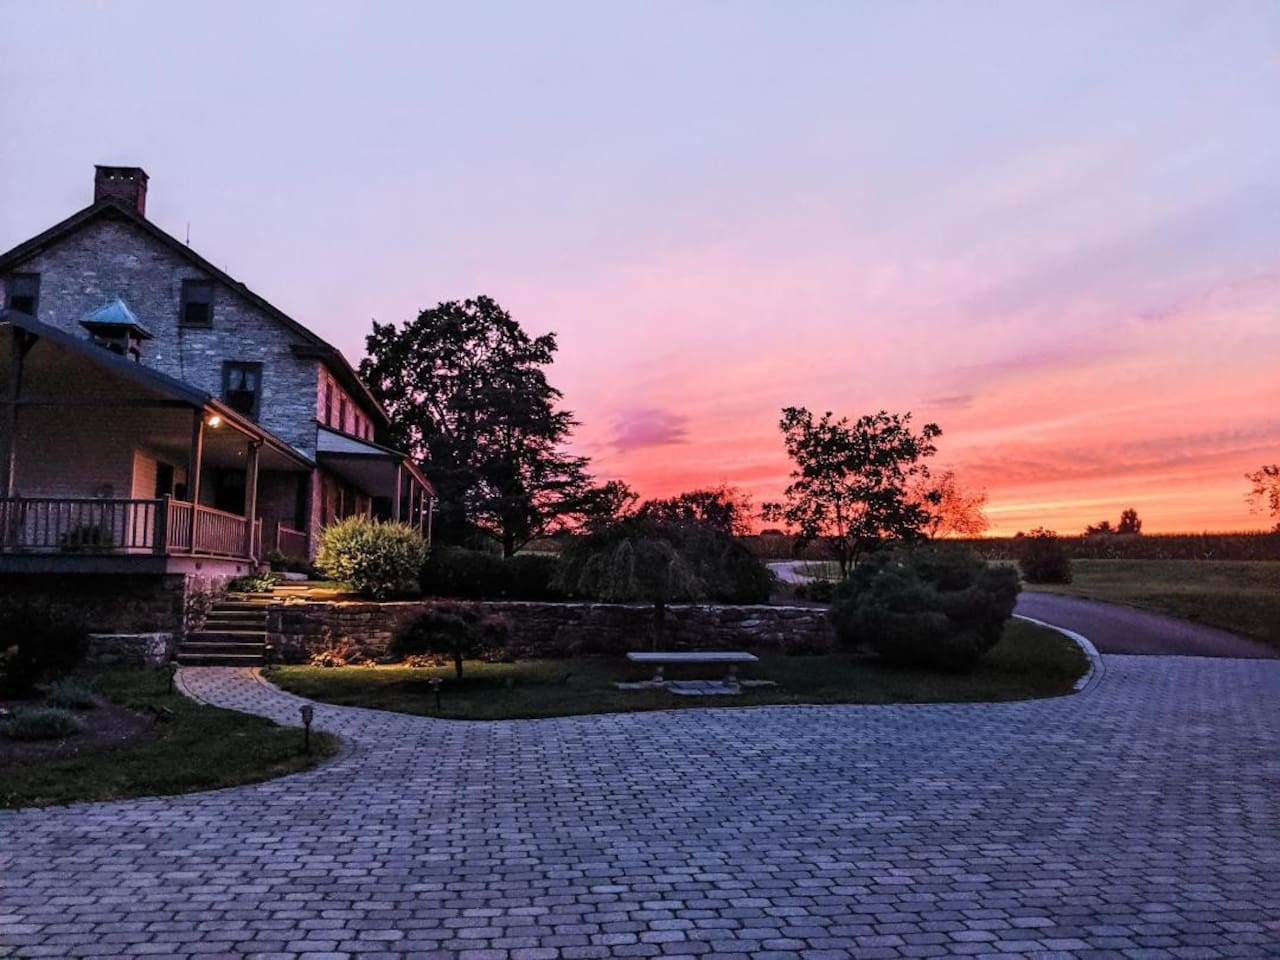 Take the opportunity to relax and take in the sunset from the front porch in the evenings, or have coffee on the back porch and watch the sunrise in the morning.